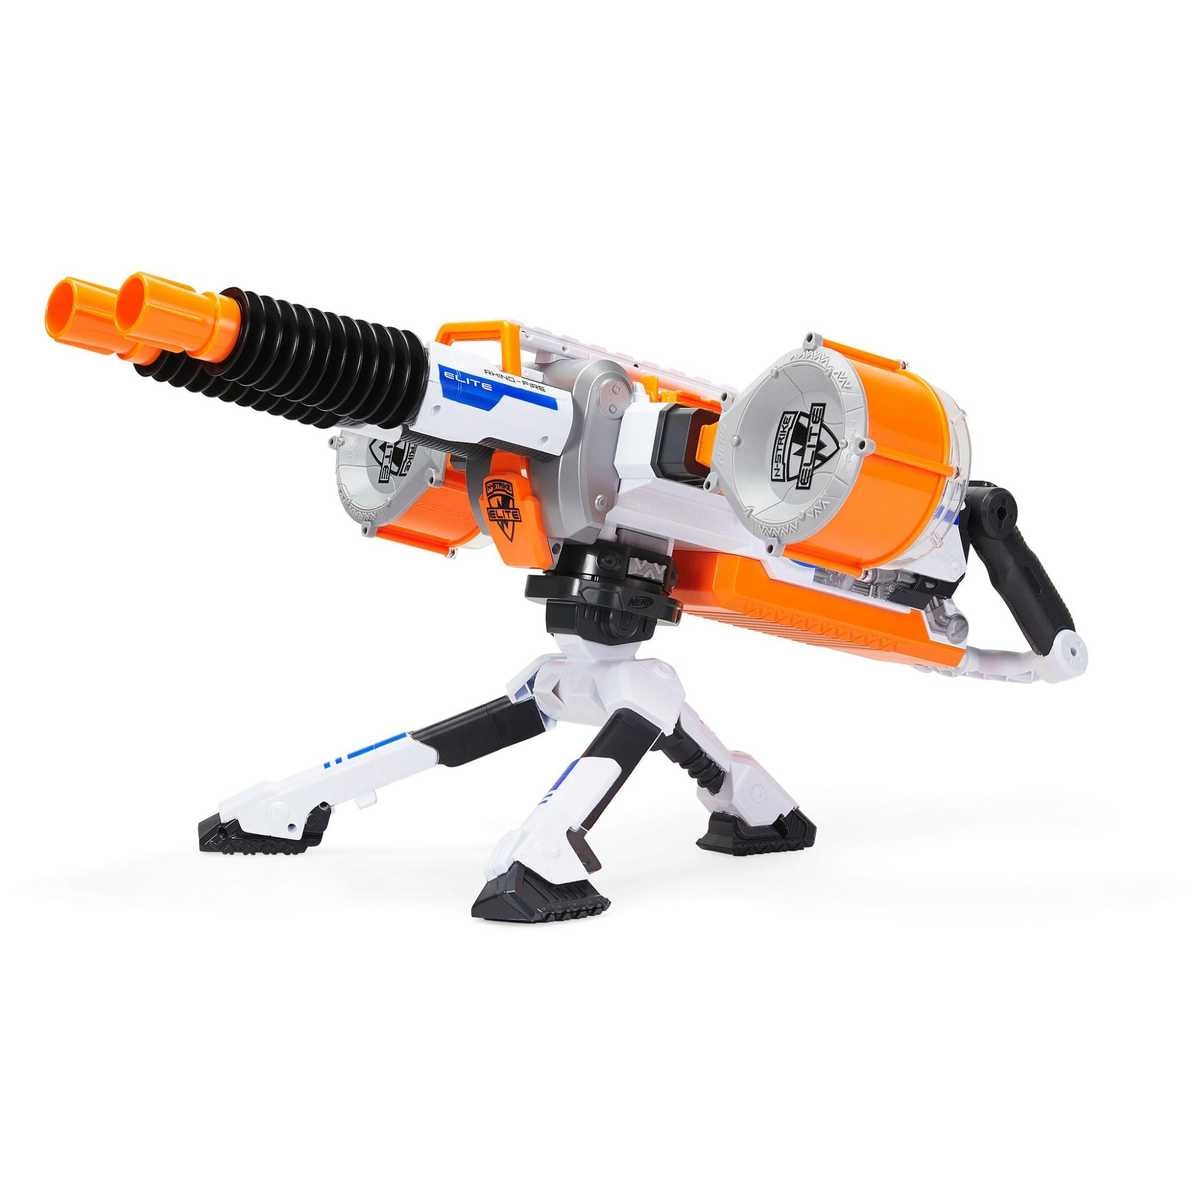 Best High Capacity Nerf Blaster, Rhino Fire